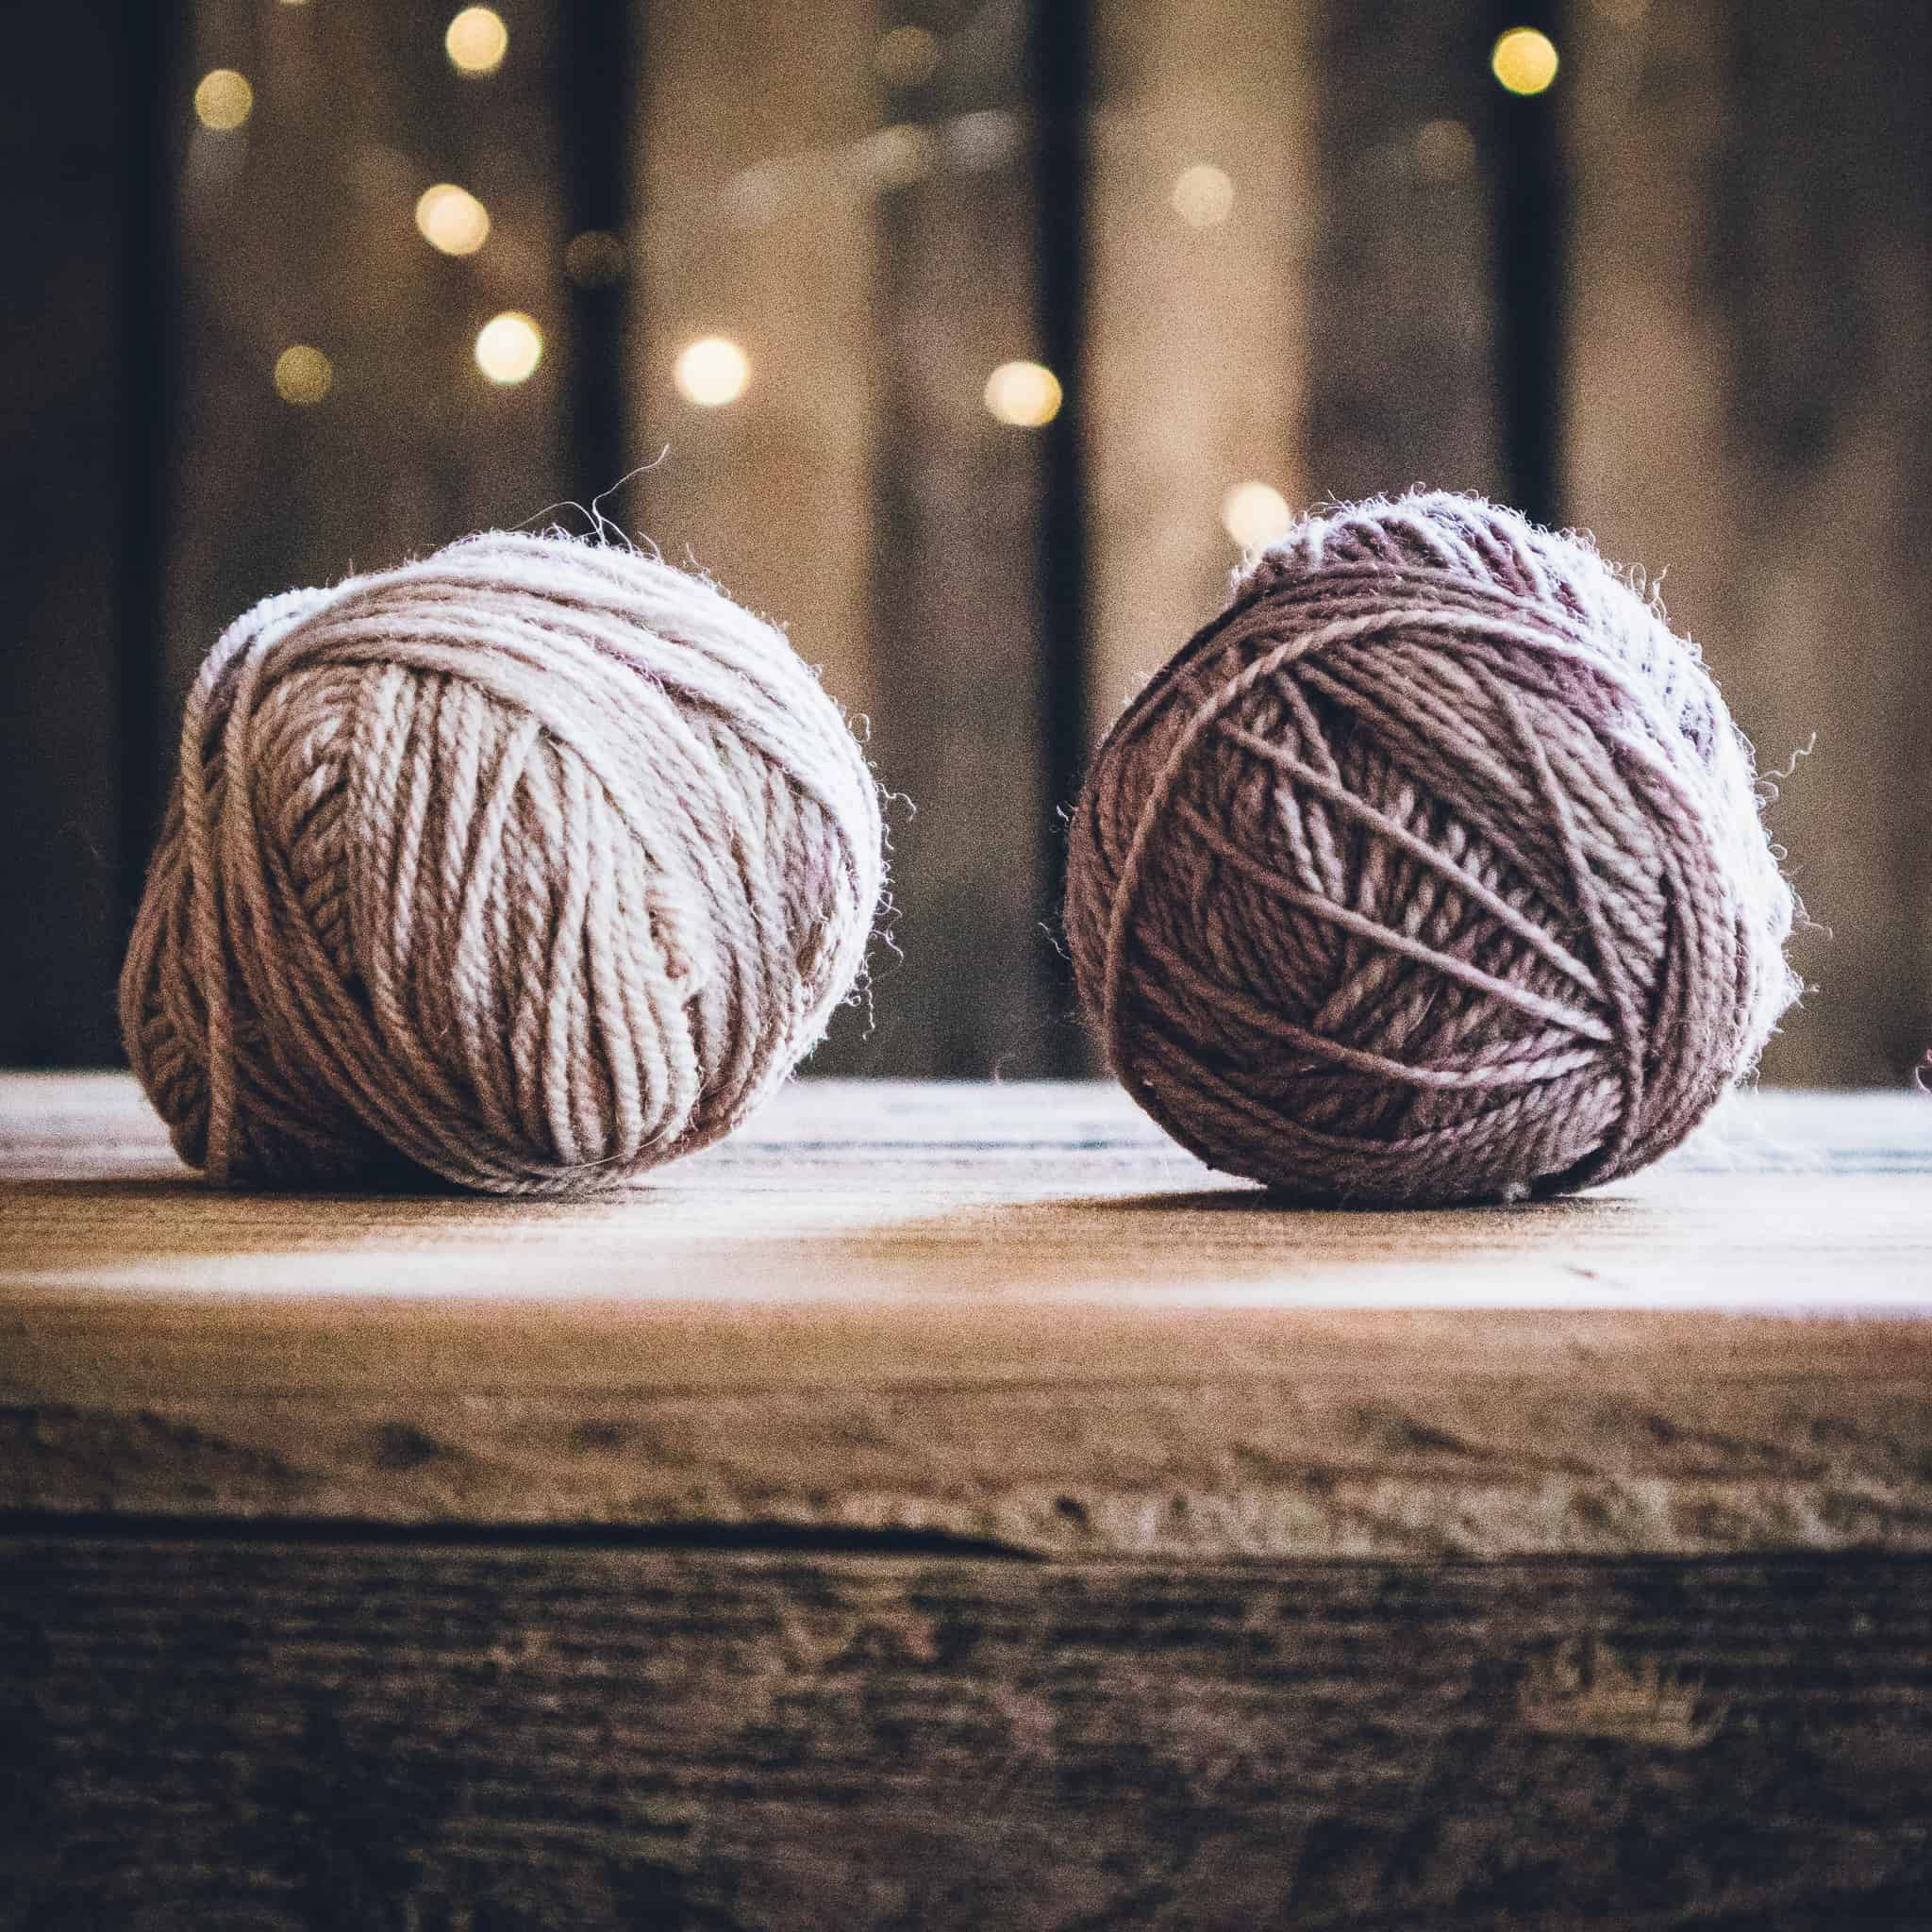 Small balls of gray yarn.